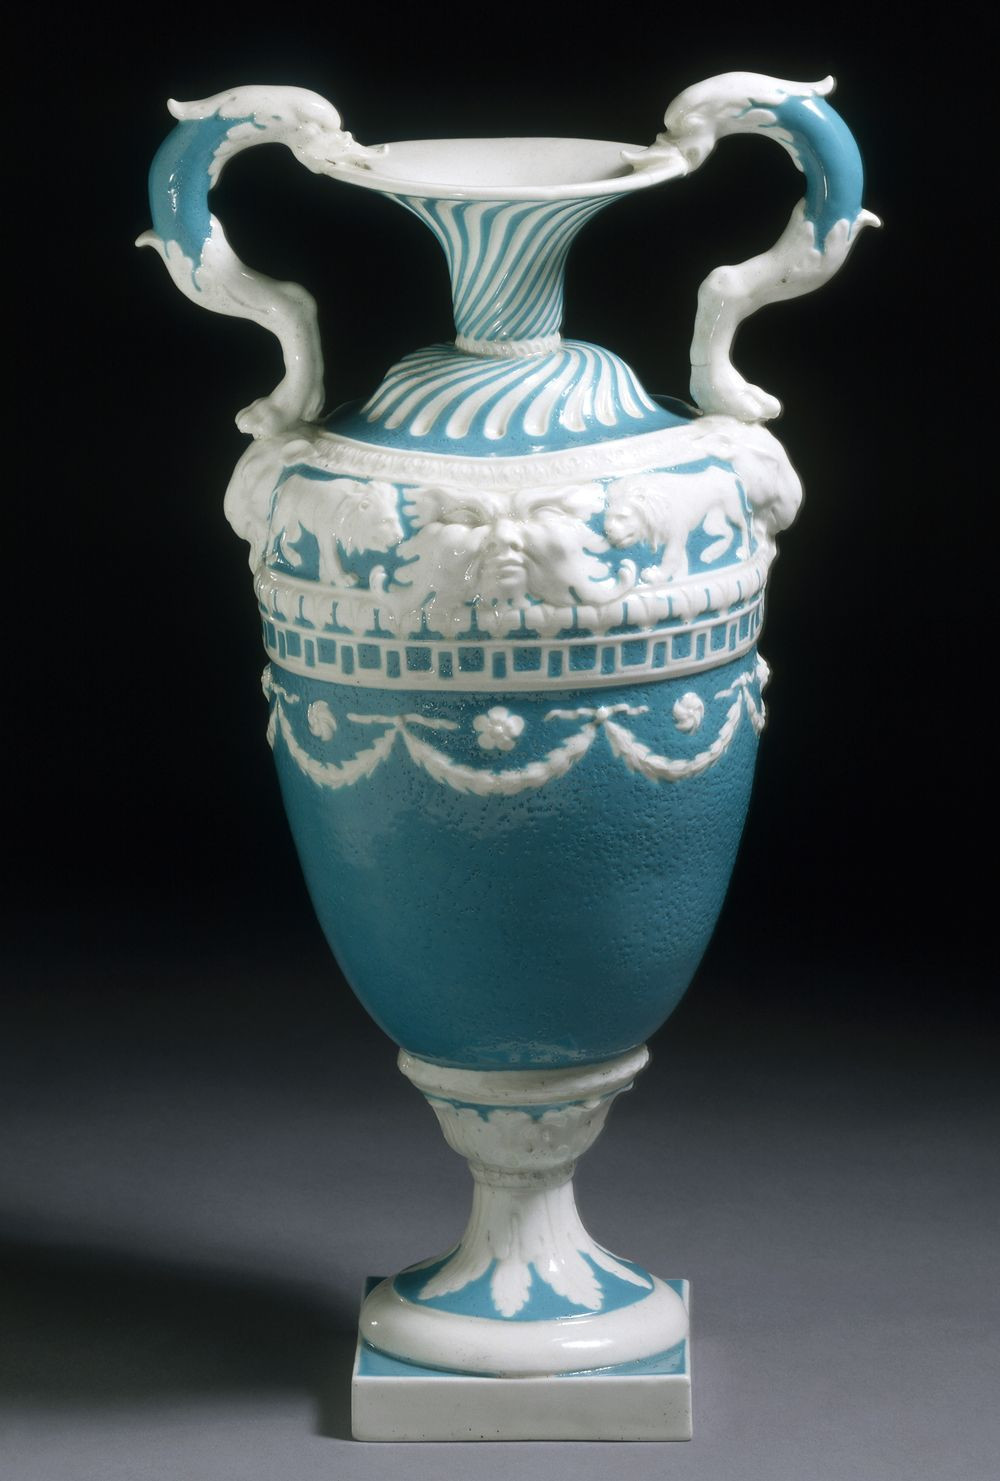 lalique versailles vase of vase derby porcelain factory 1773 1774 neo classicism was a regarding vase derby porcelain factory 1773 1774 neo classicism was a style that emerged in britain and france in the 1750s the style was based on the designs of